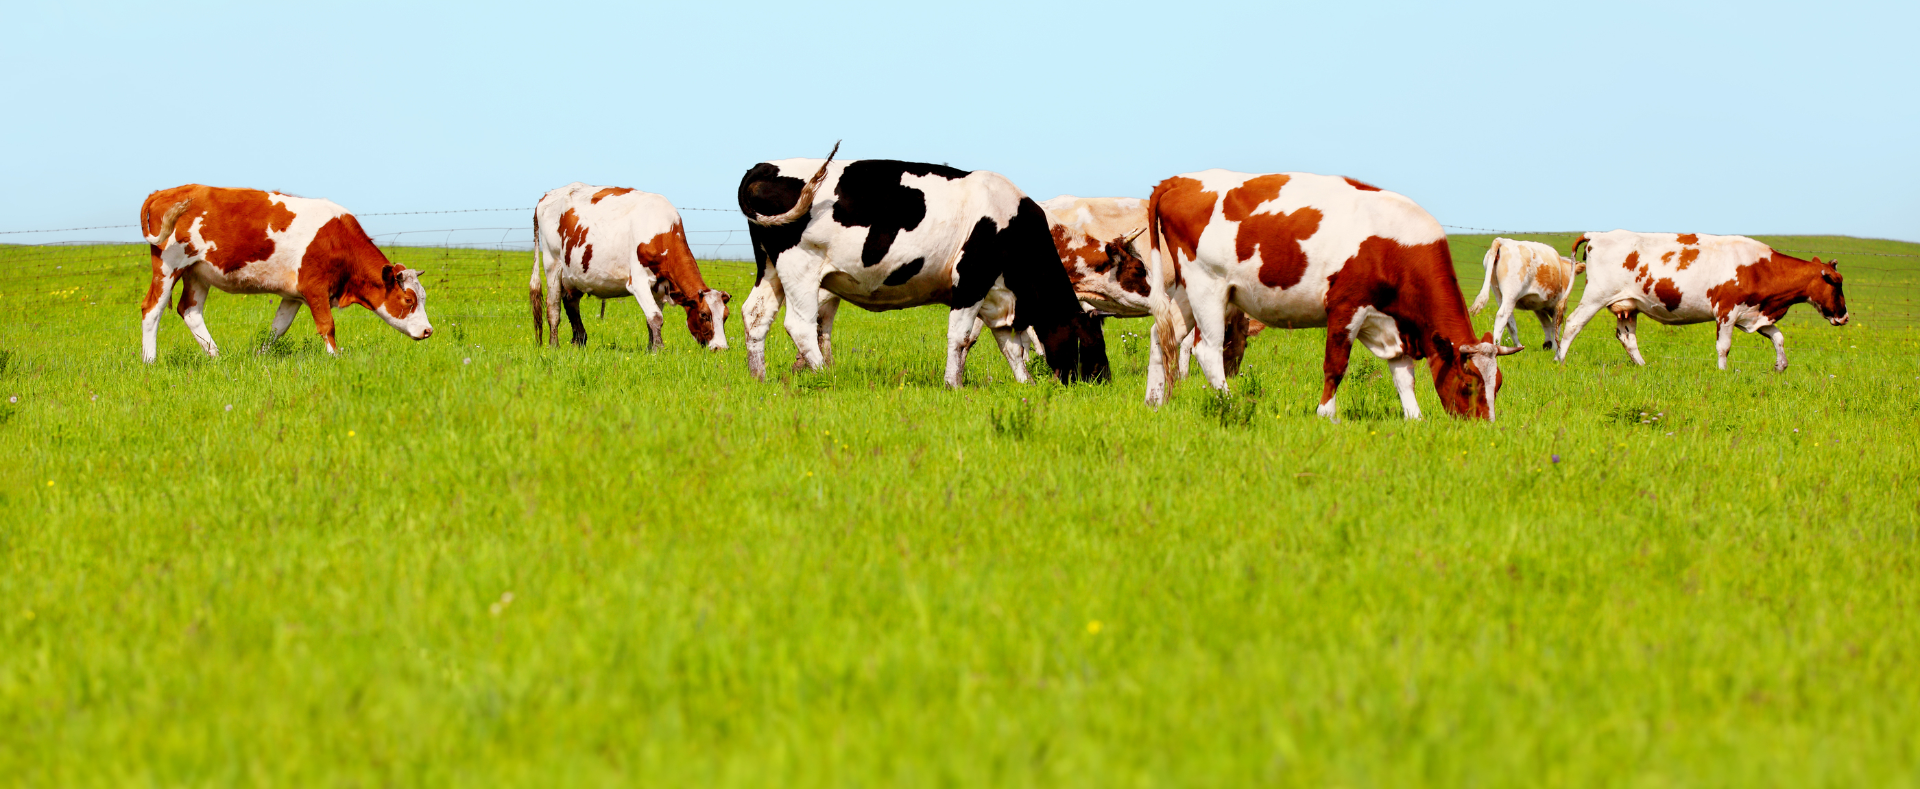 Cows grazing on pasture_edited.jpg